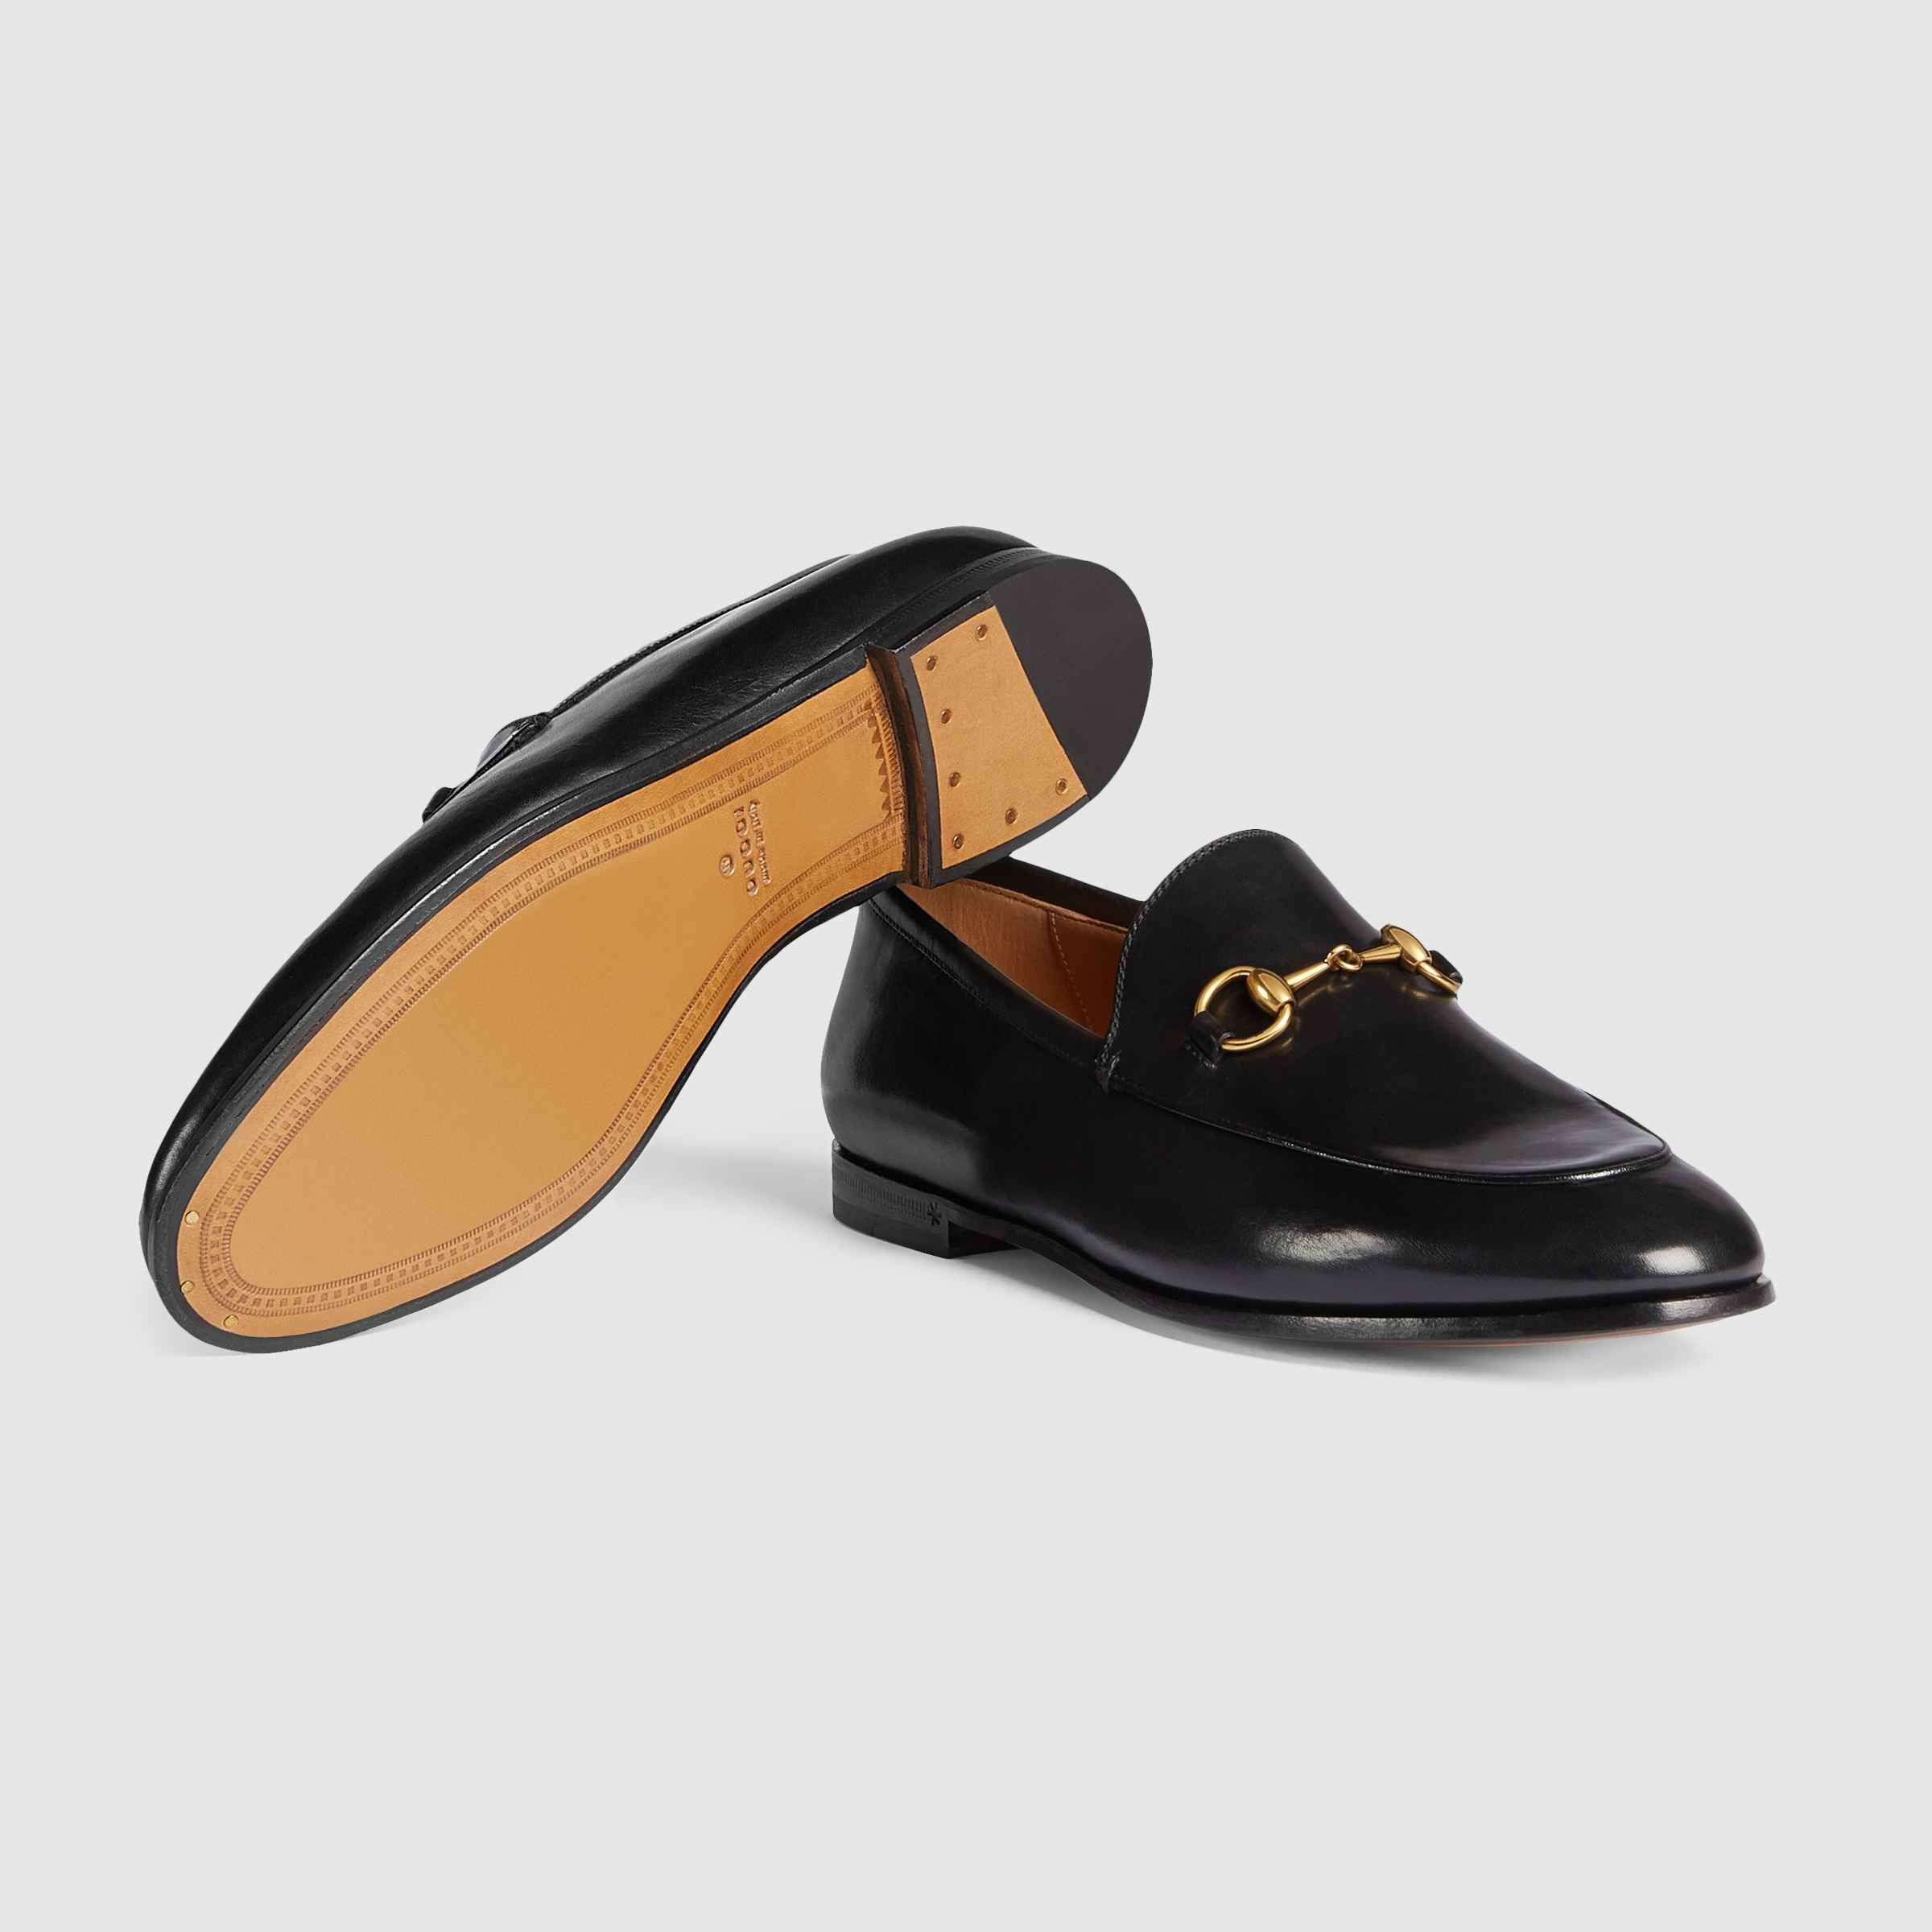 60b66a900 Shop the Gucci Jordaan leather loafer by Gucci. The Gucci Jordaan is our  new Horsebit loafer with a slimmer shape and Horsebit.